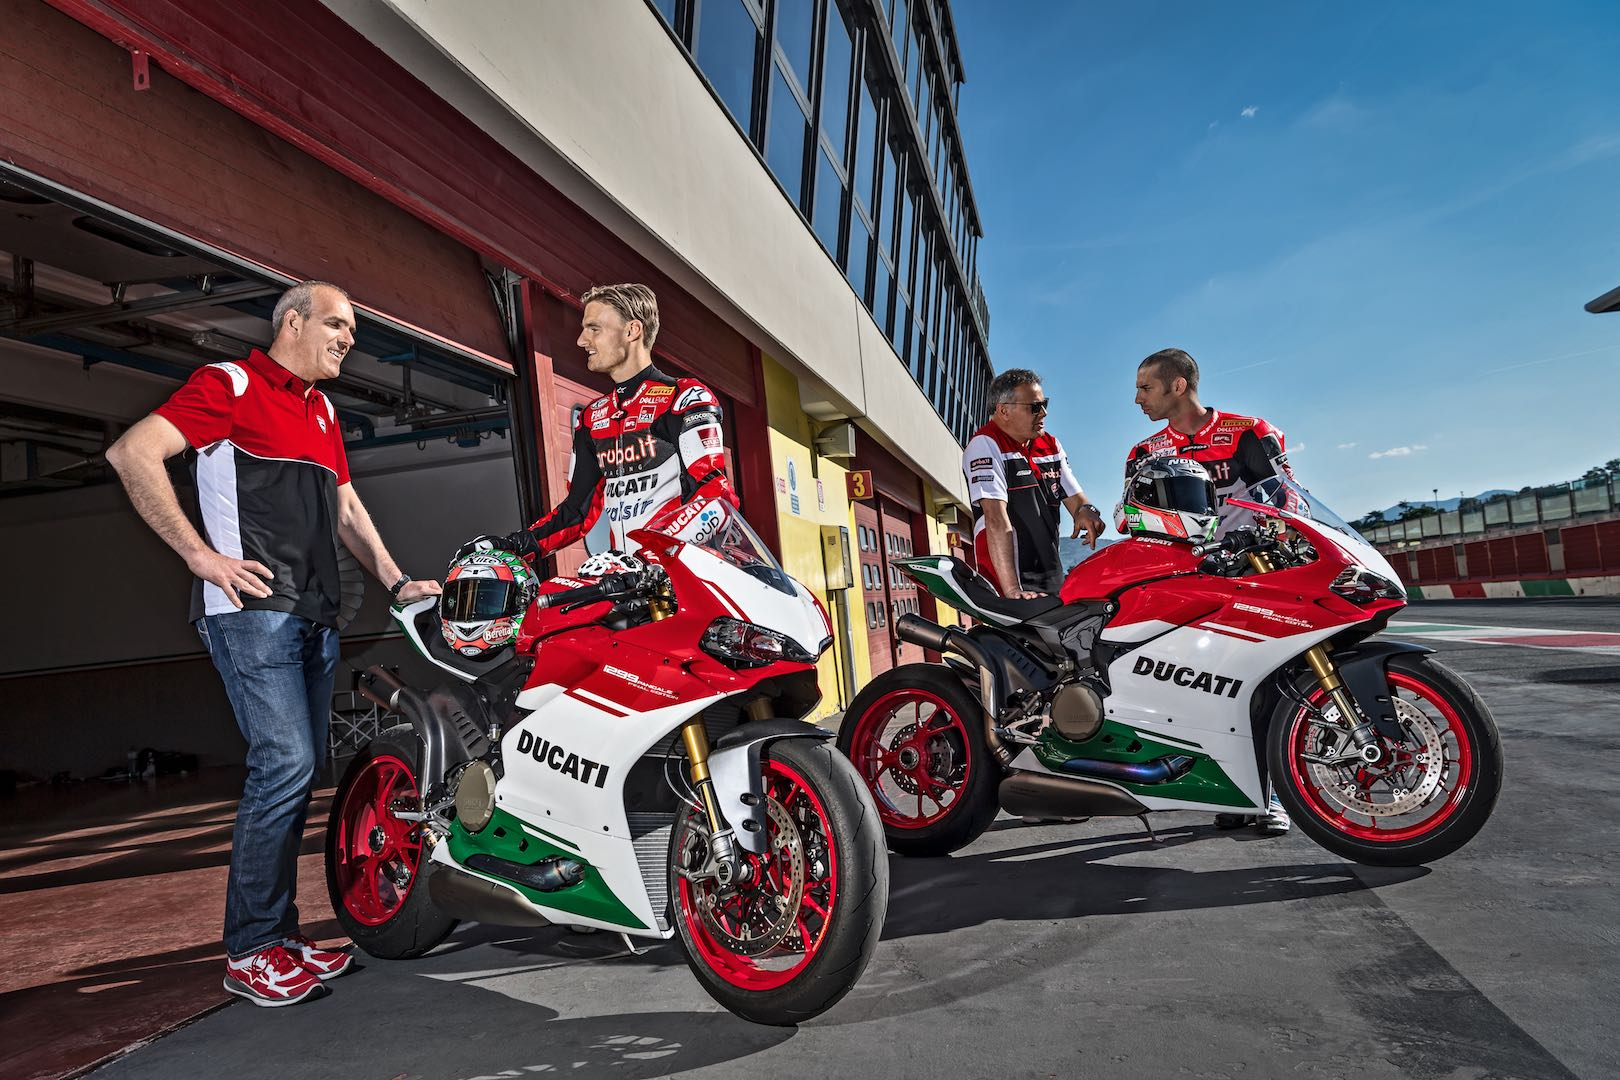 ducati 1299 panigale r final edition unveiled: making way for v4 era